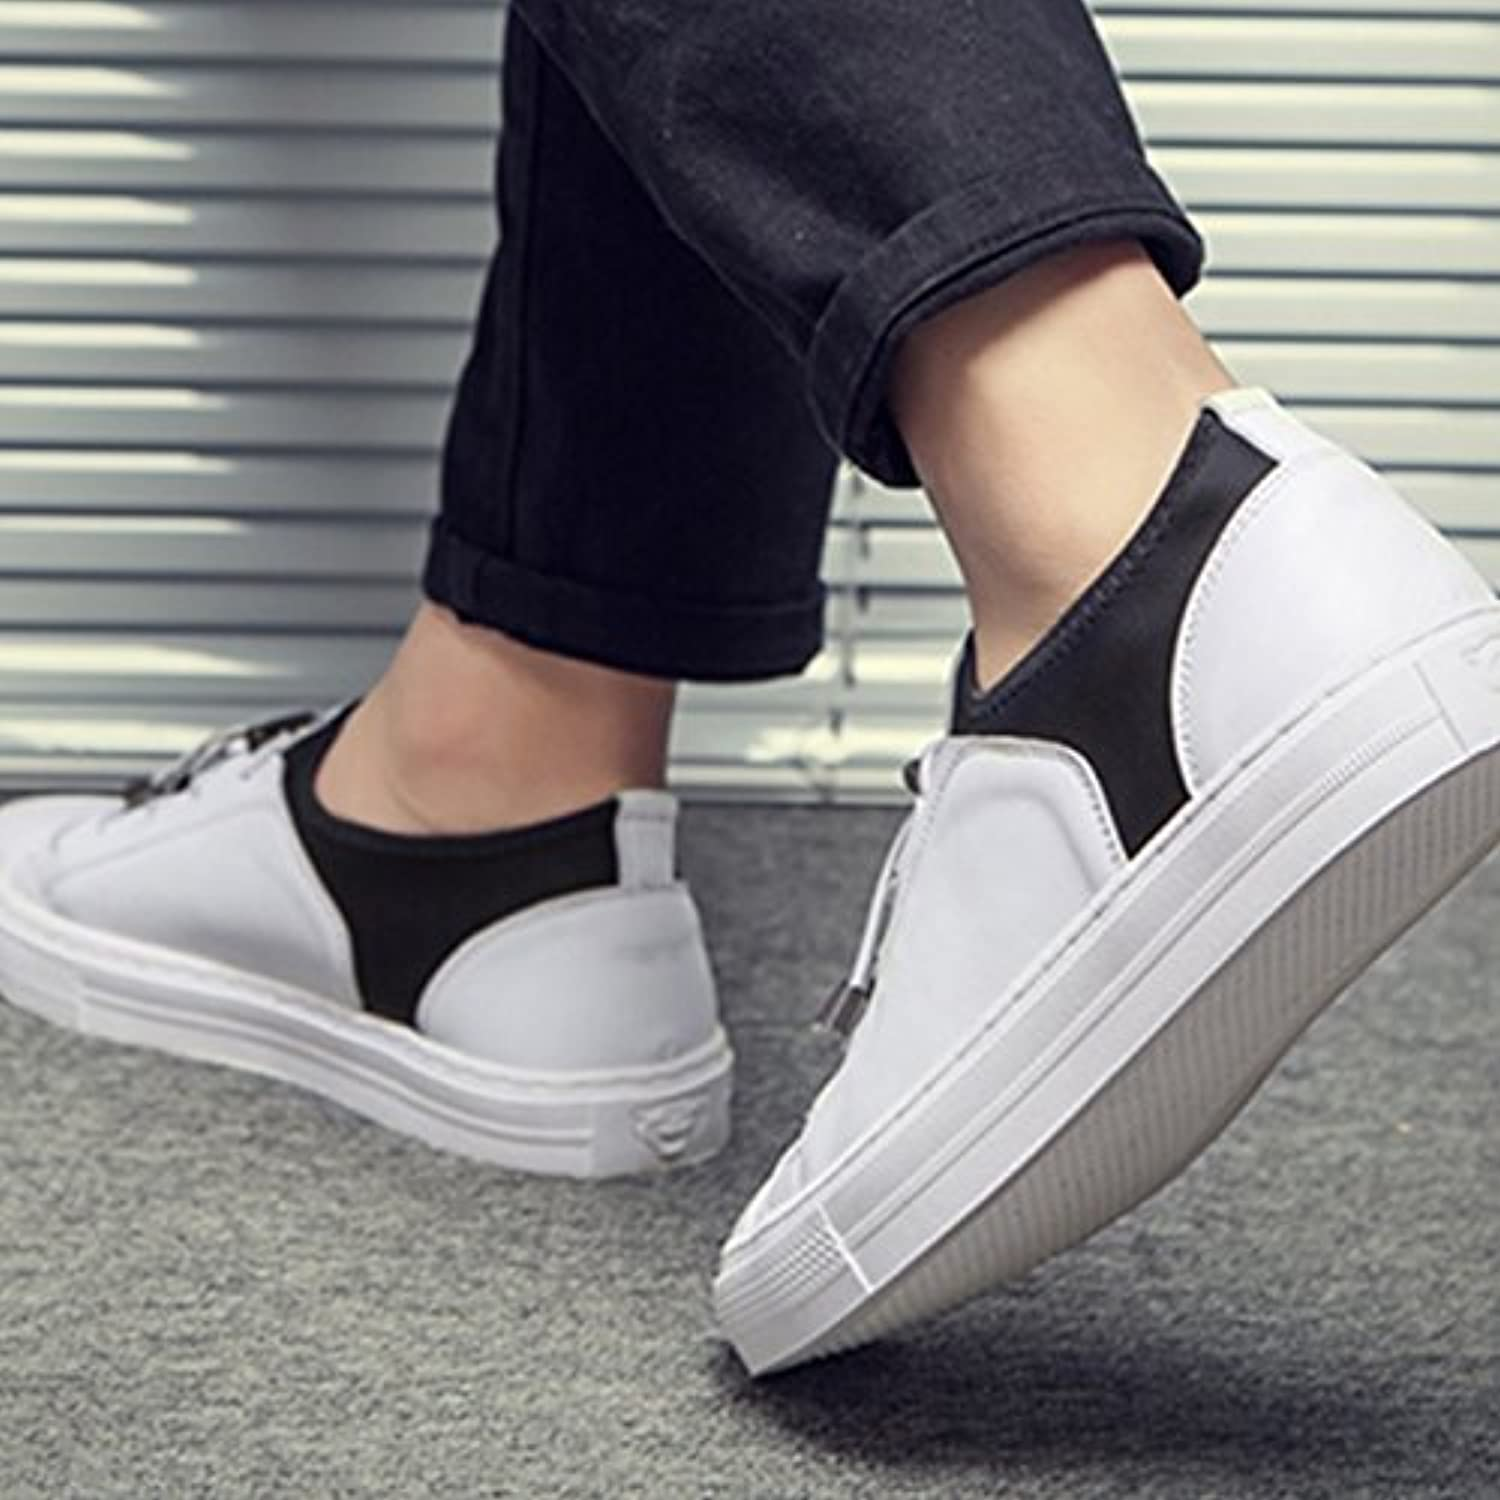 YIXINY 19191 Spring And Autumn New Korean Version Round Head Men's Sports Casual shoes (color   White, Size   EU39 UK6 CN39)